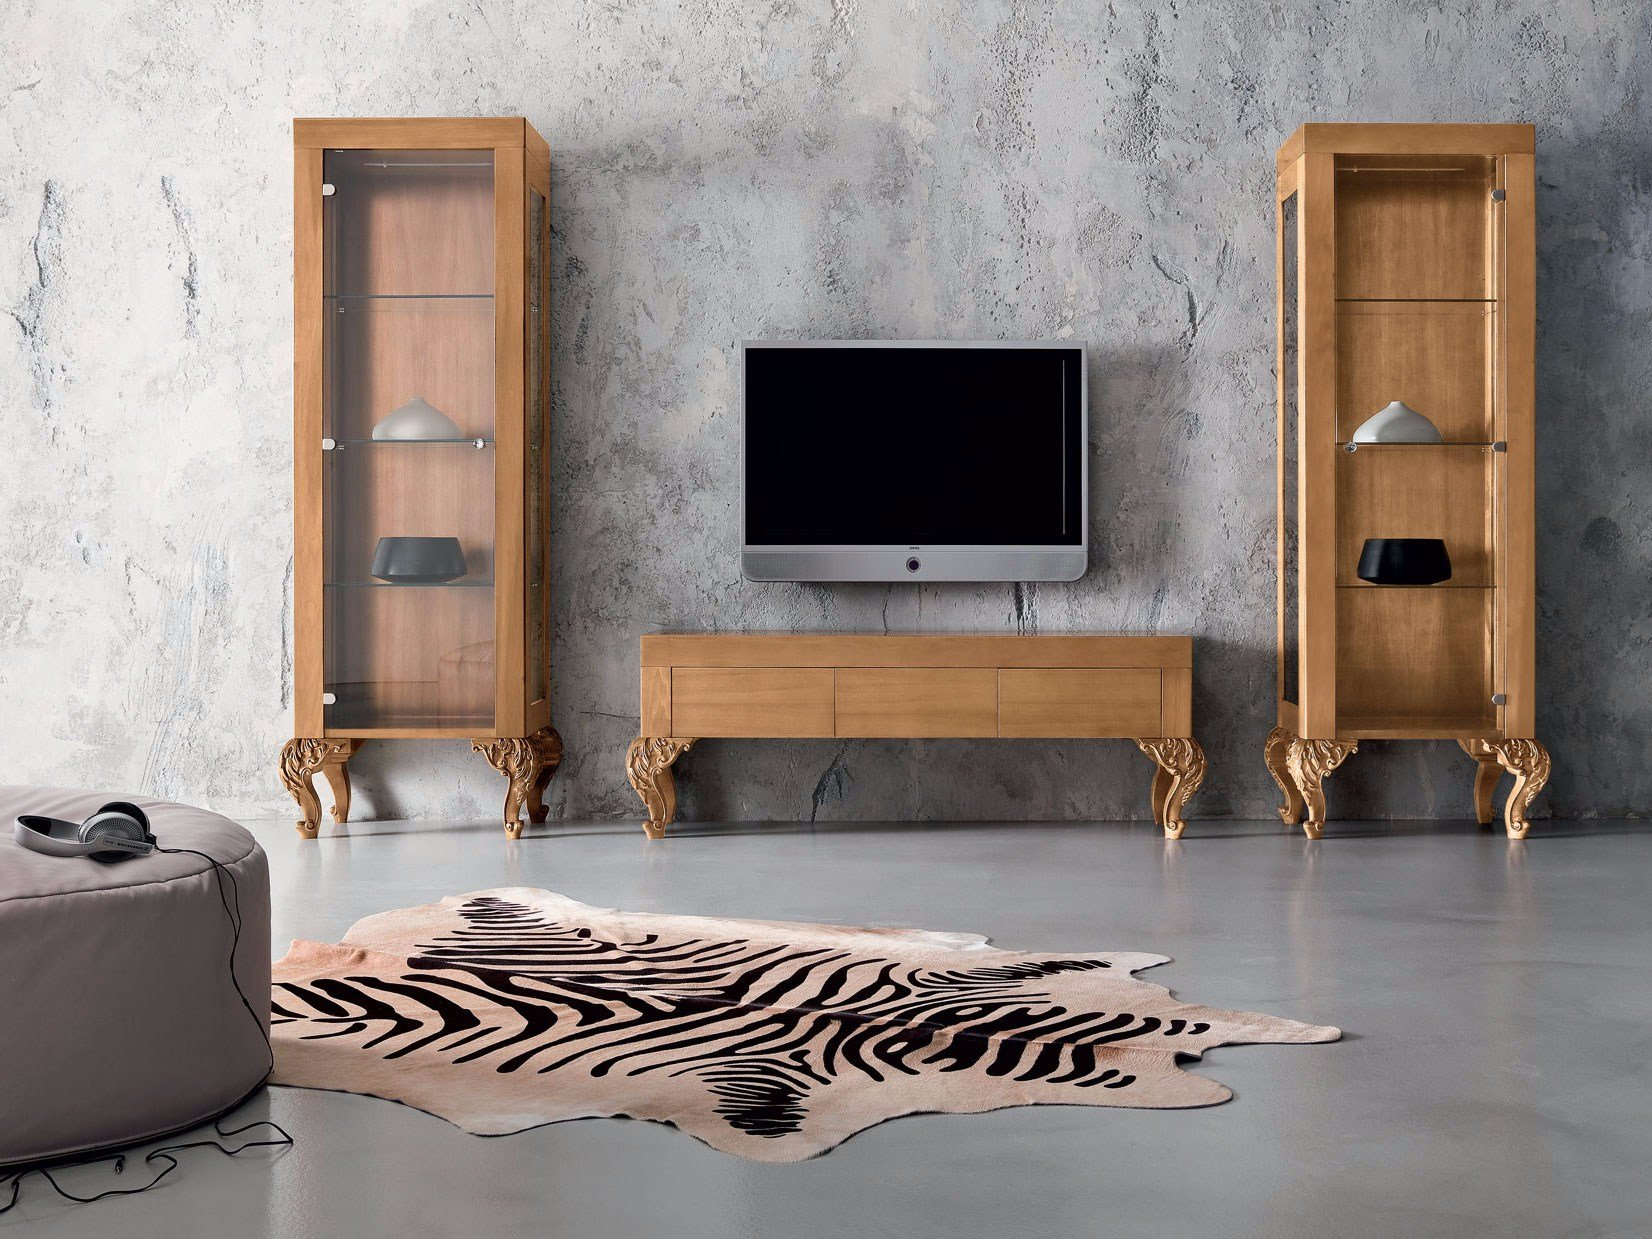 Minimal baroque meuble tv by modenese gastone group - Meuble tv style baroque ...